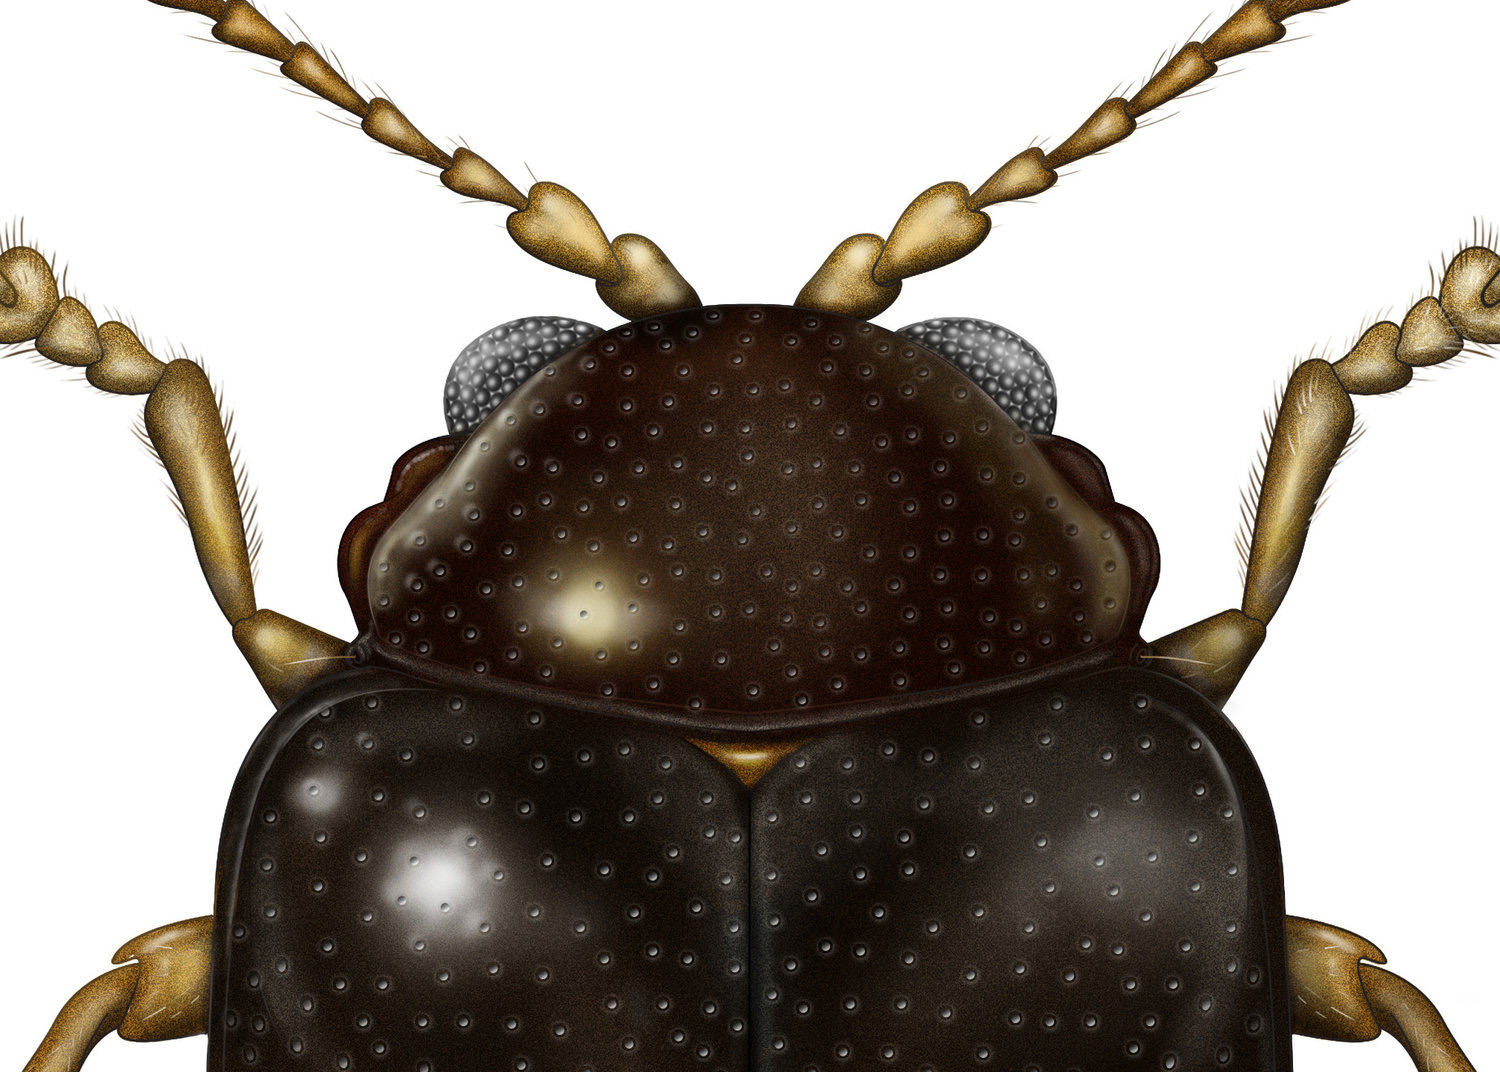 Flea+Beetle+Specimen+Illustration+by+Jillian+Ditner.jpg